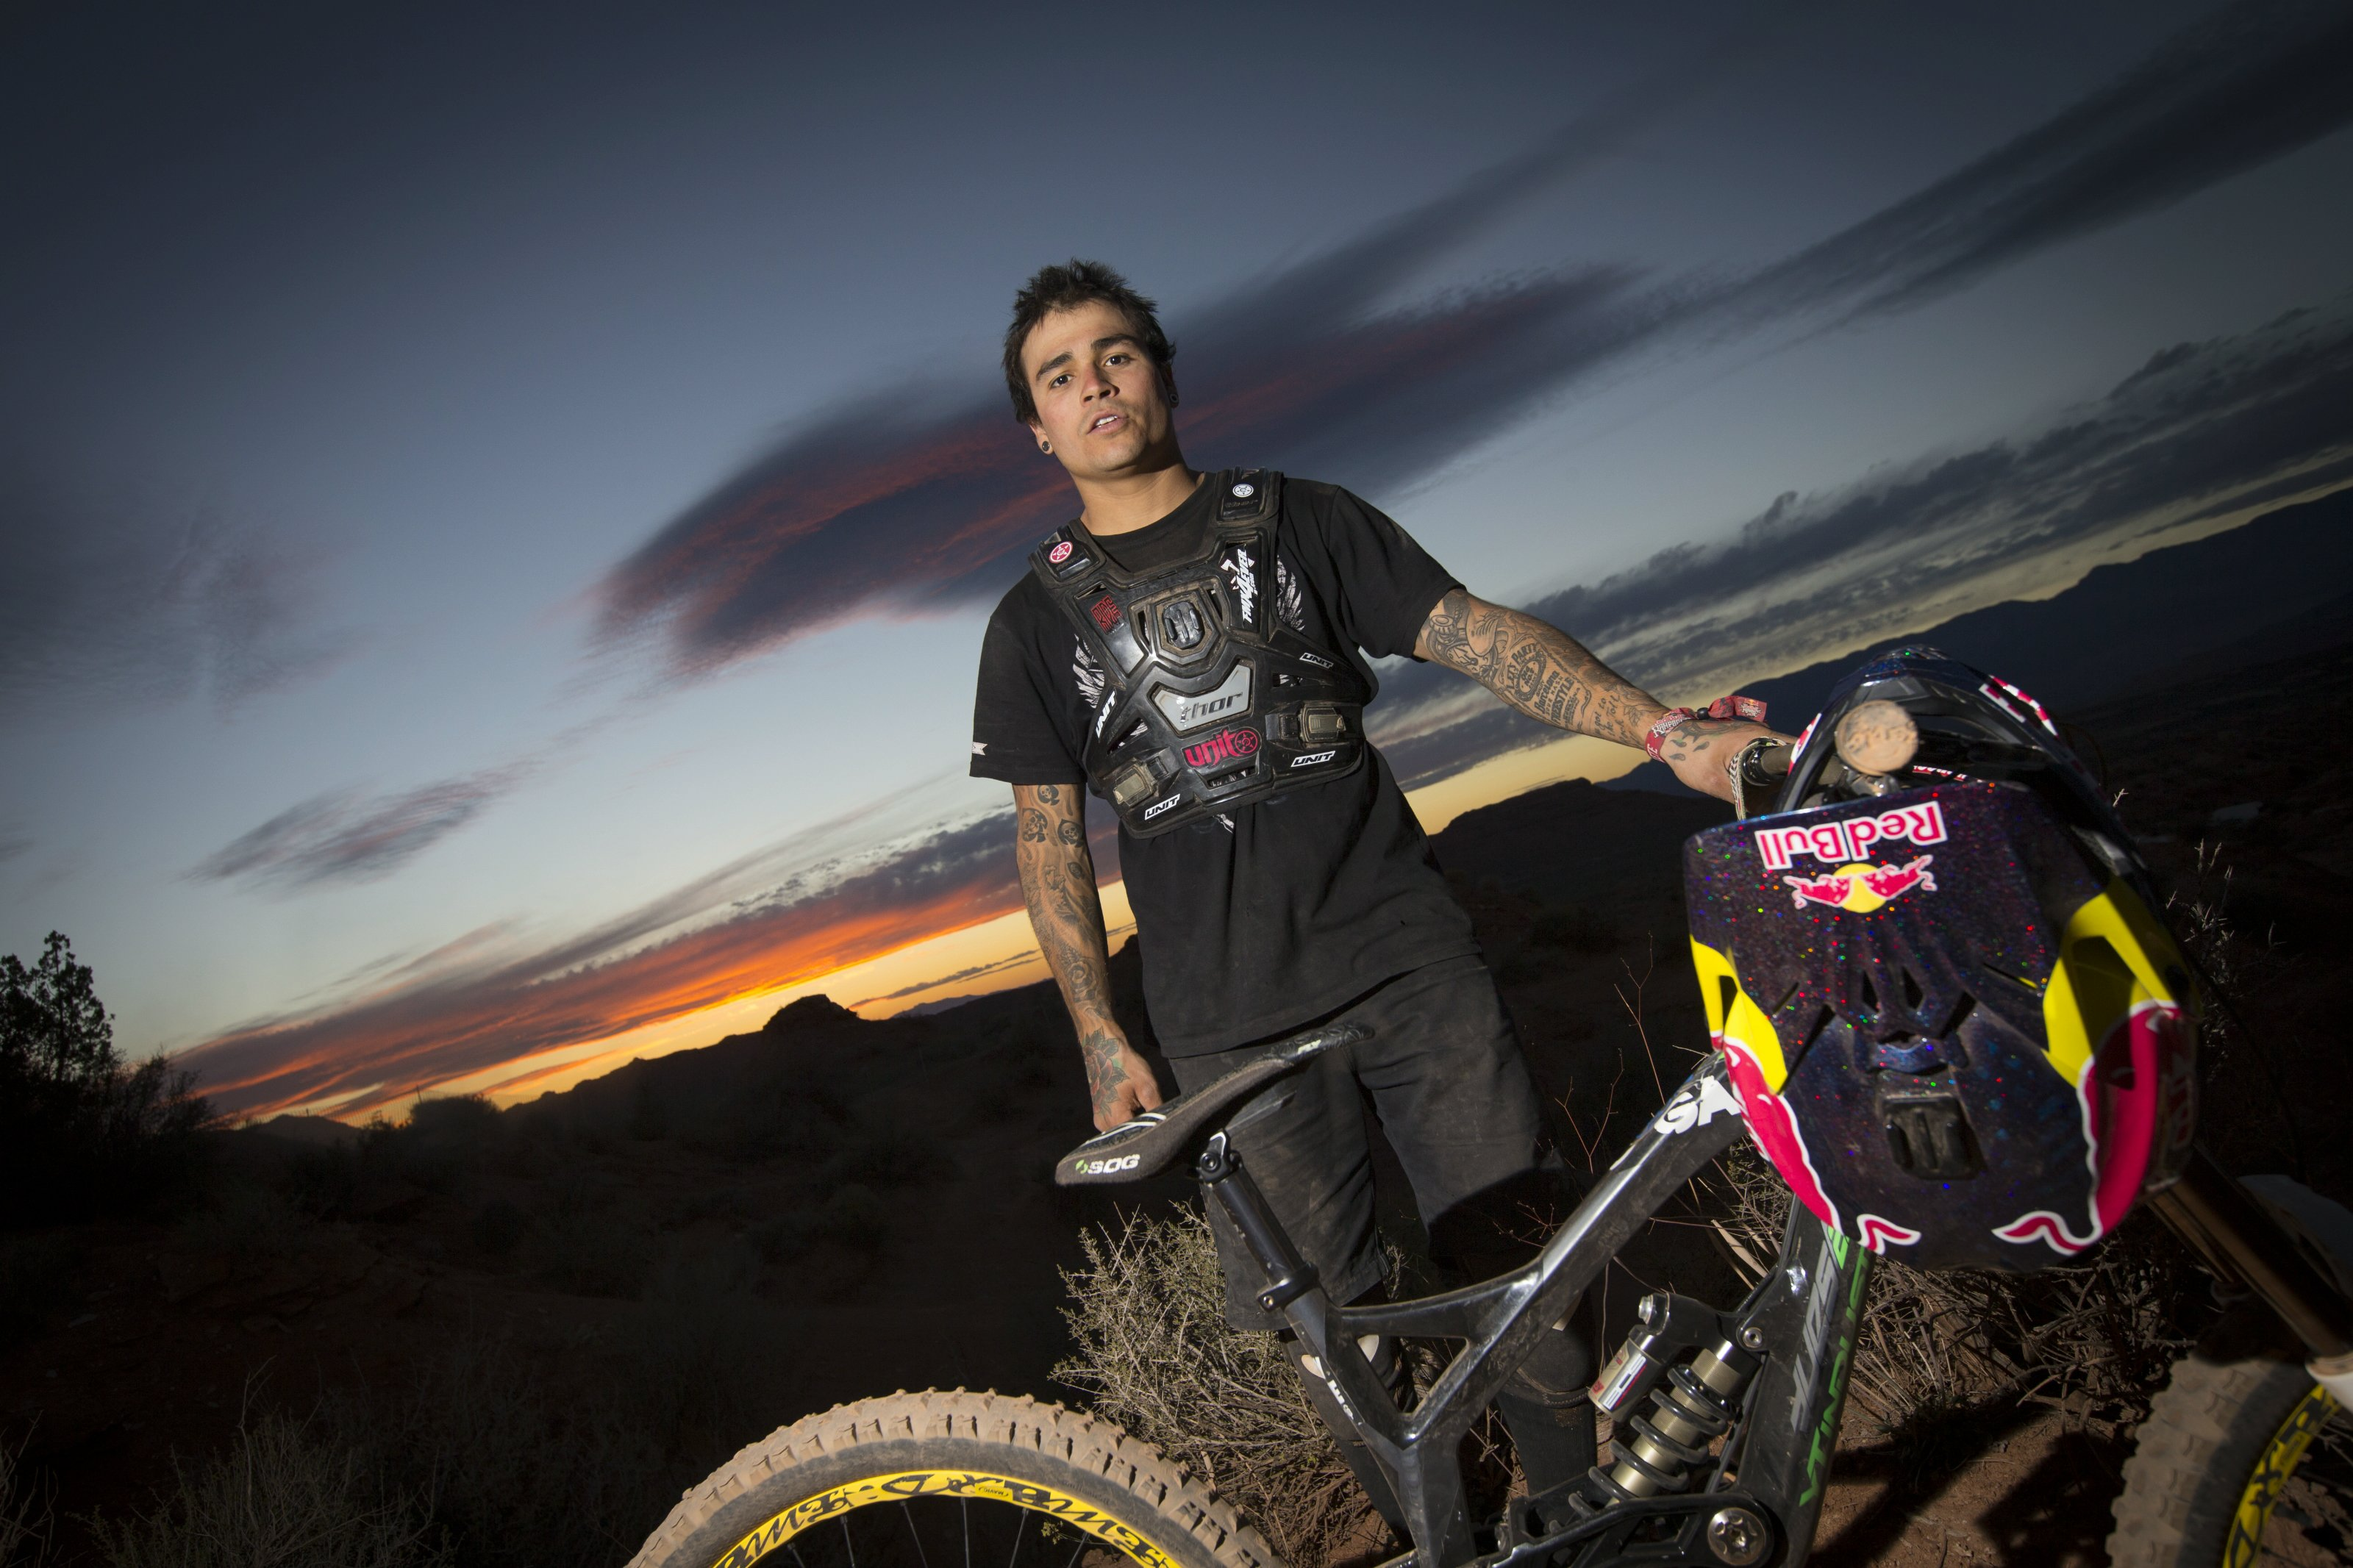 Andreu Lacondeguy poses for a portrait during Red Bull Rampage in Virgin, Utah, USA, on 08 October 2013. // Christian Pondella/Red Bull Content Pool // P-20131009-00016 // Usage for editorial use only // Please go to www.redbullcontentpool.com for further information. //